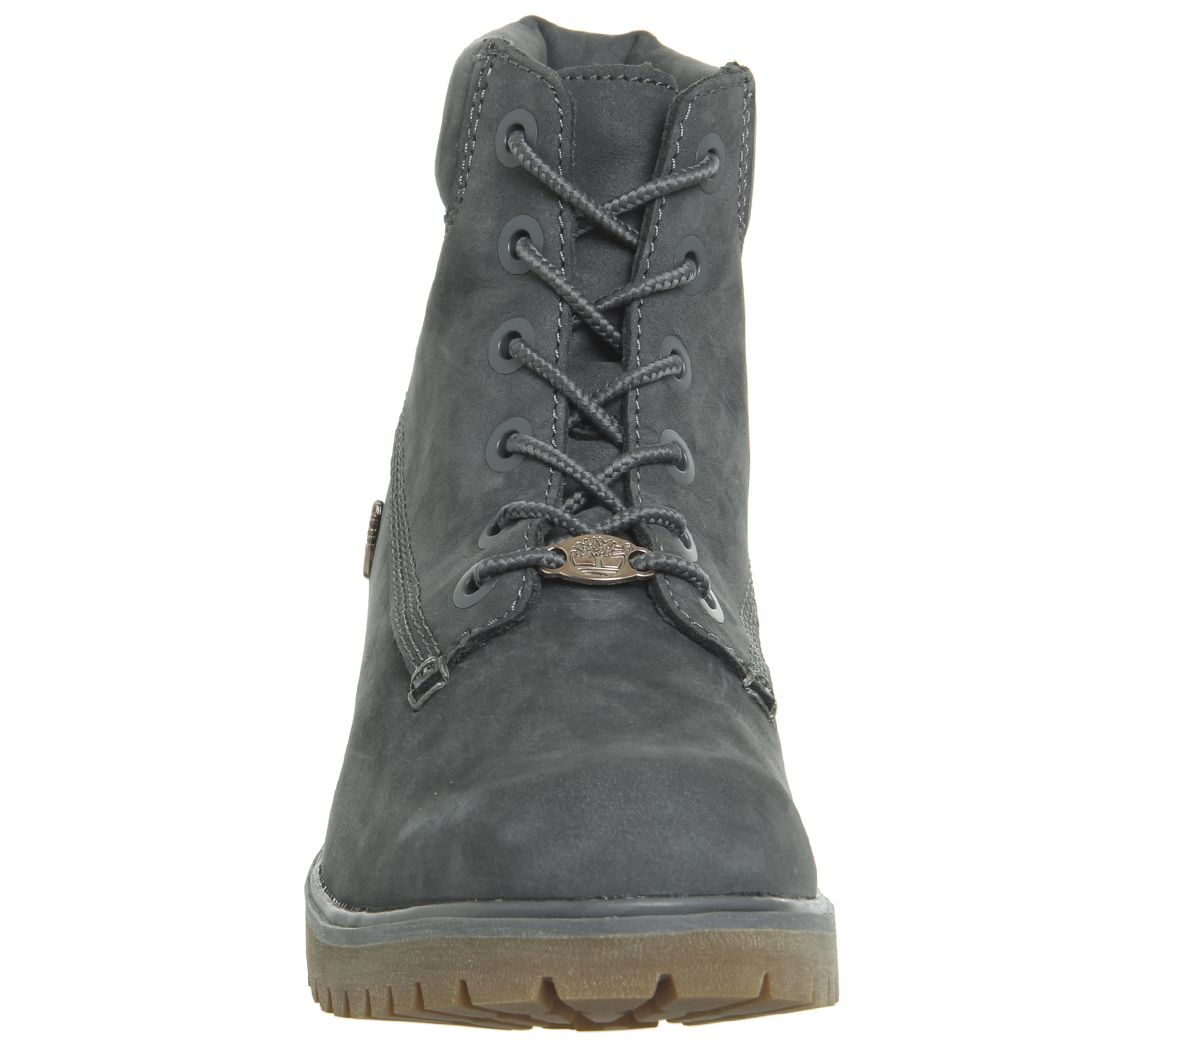 886b19184bf Details about Womens Timberland Slim Premium 6 Inch Boots Forged Iron  Nubuck Boots